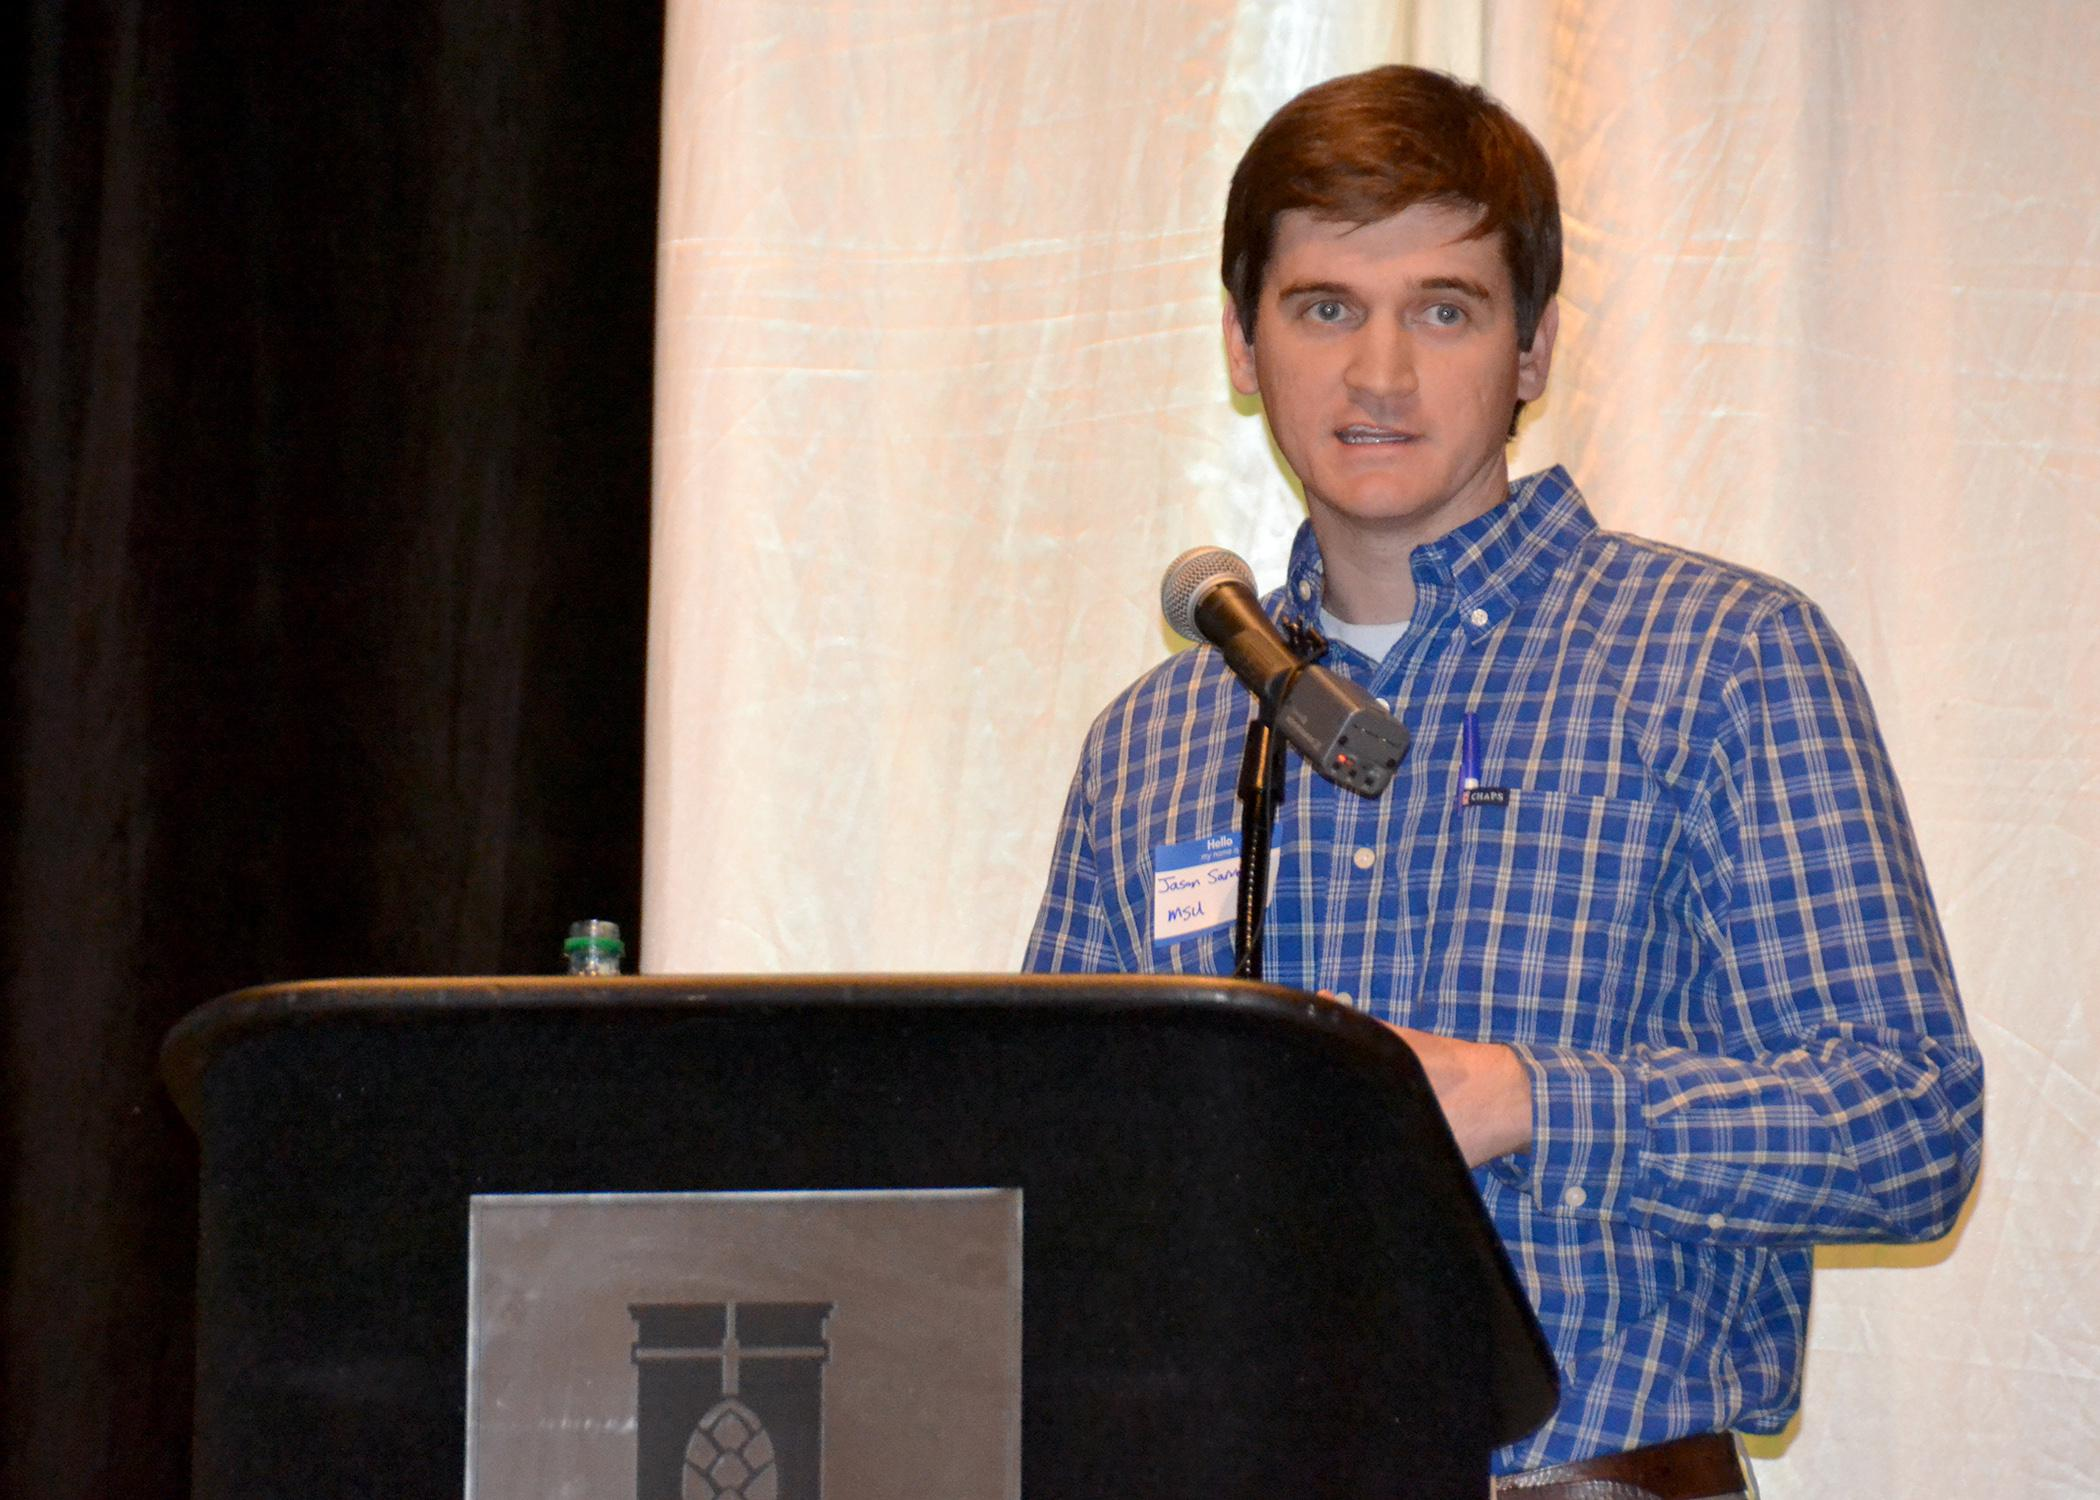 Jason Sarver, newly-hired peanut specialist with the Mississippi State University Extension Service and Mississippi Agricultural and Forestry Experiment Station, told a crowd of growers and industry representatives his research plans for the crop during the 9th annual Mississippi Peanut Growers Association meeting in Hattiesburg Feb. 12. The two-day meeting continues Feb. 13 and addresses factors that influence the crop's profitability. (Photo by MSU Ag Communications/Susan Collins-Smith)